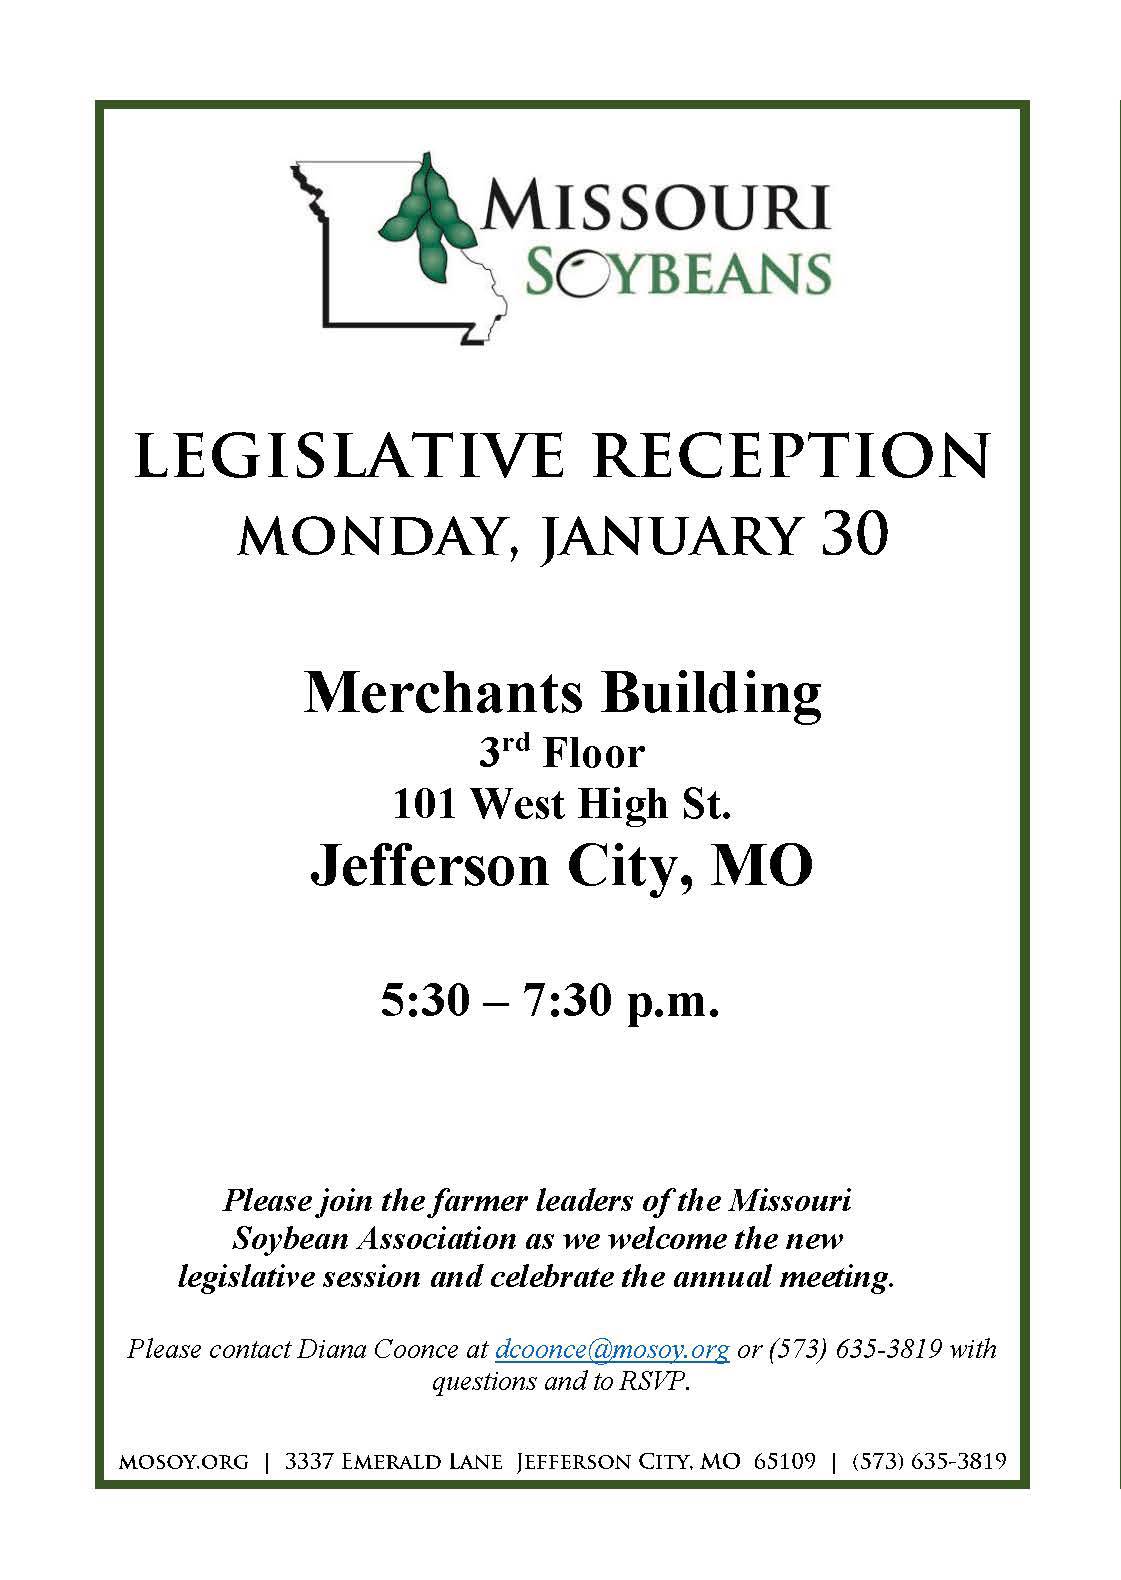 Missouri Soybean Association Legislative Welcome and Annual Meeting Set